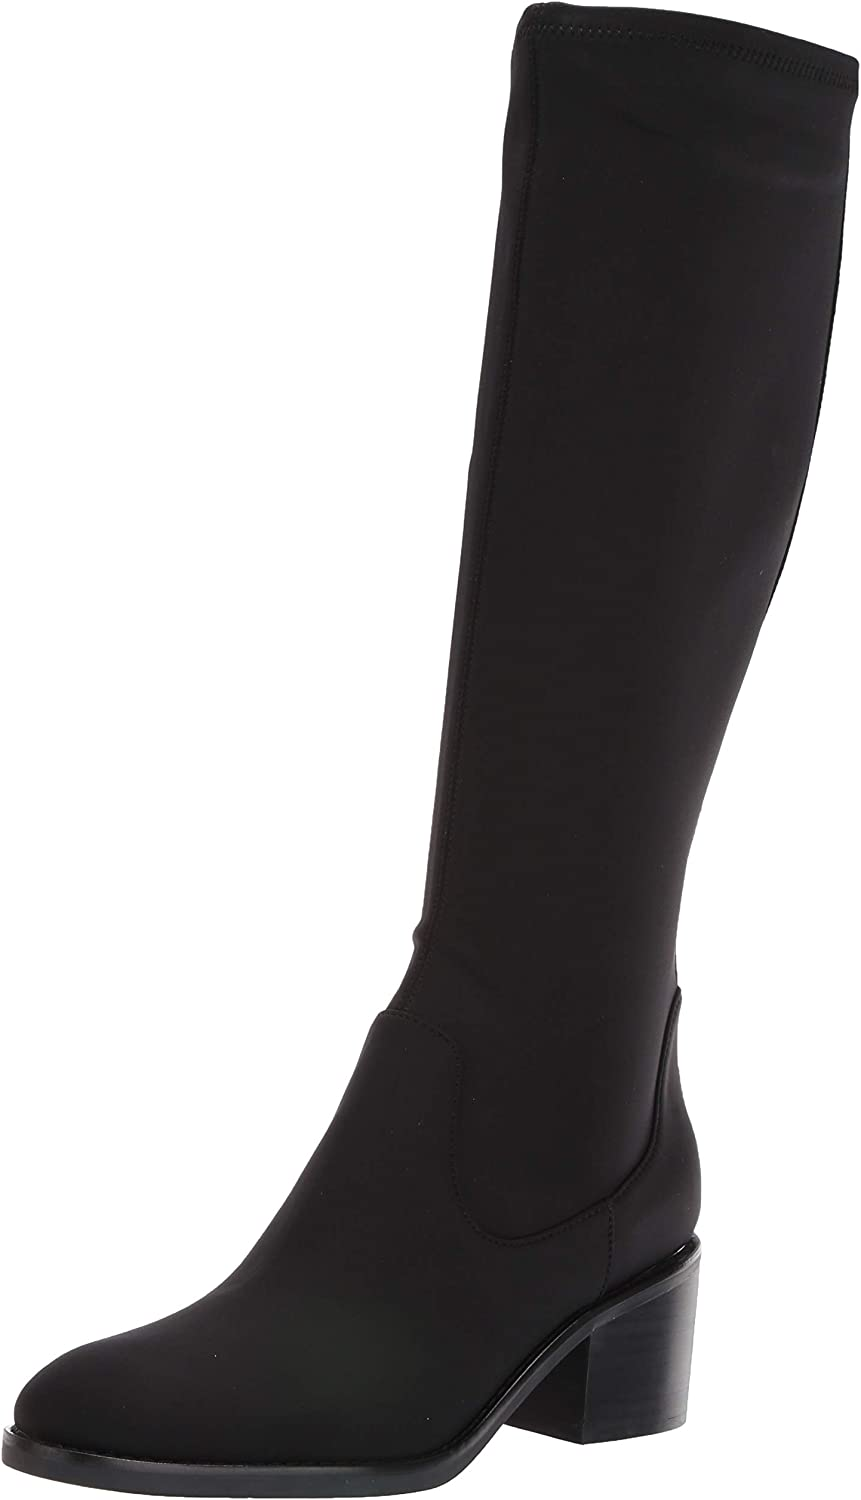 Sale special price Donald J Pliner Women's High Boot Now on sale Knee